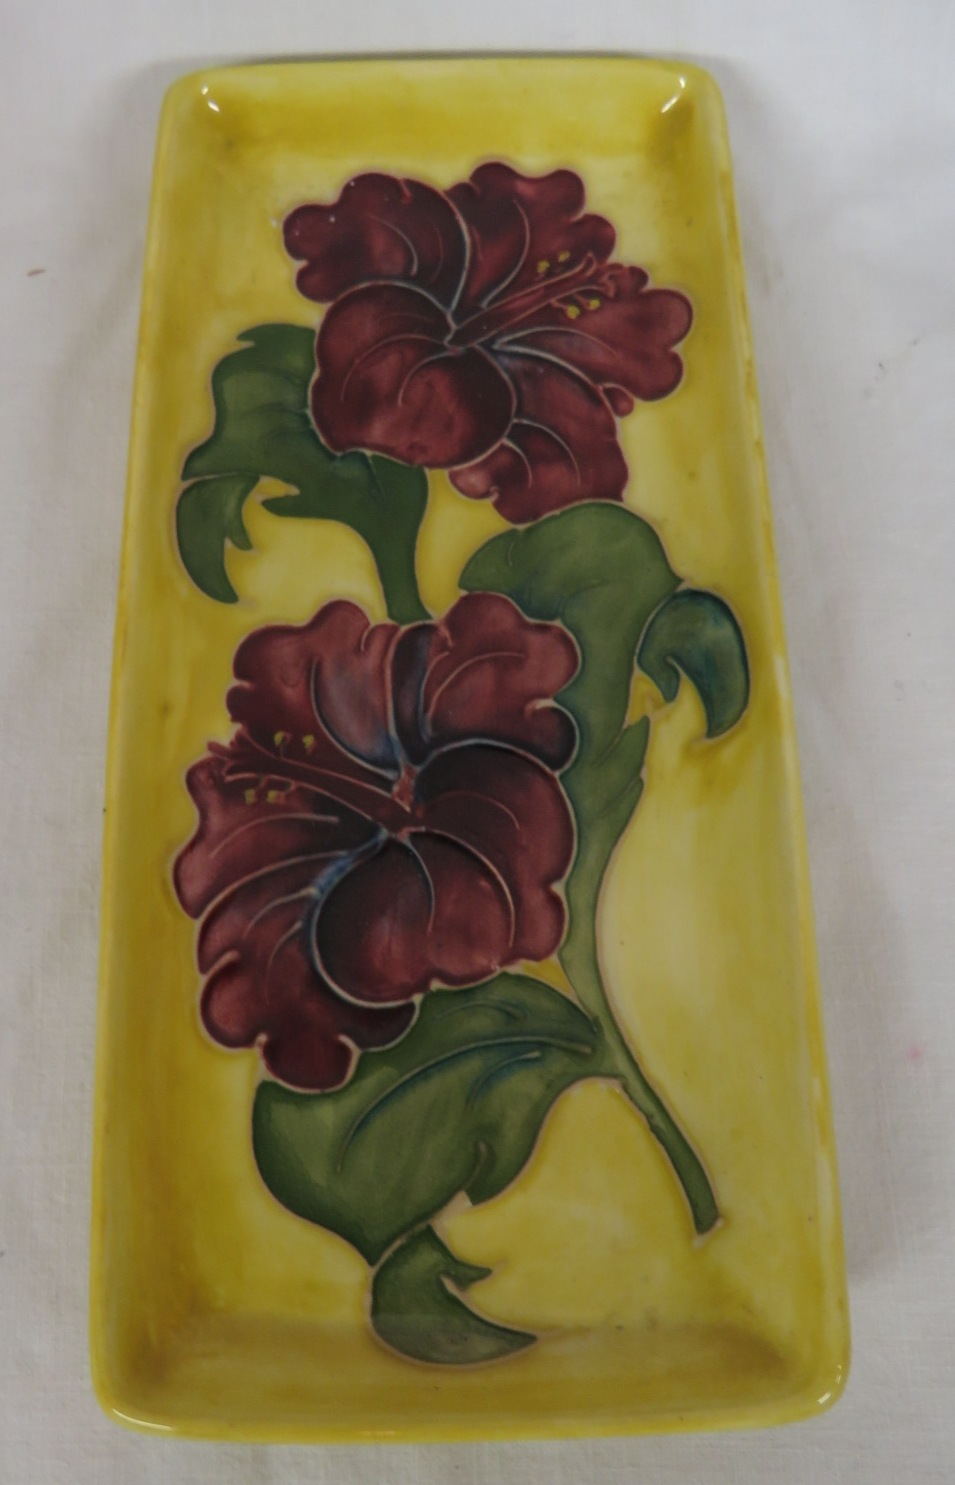 Lot 92 - Moorcroft pottery oblong dressing table dish, yellow ground with mauve flowers, 9cm x 20.5cm, the